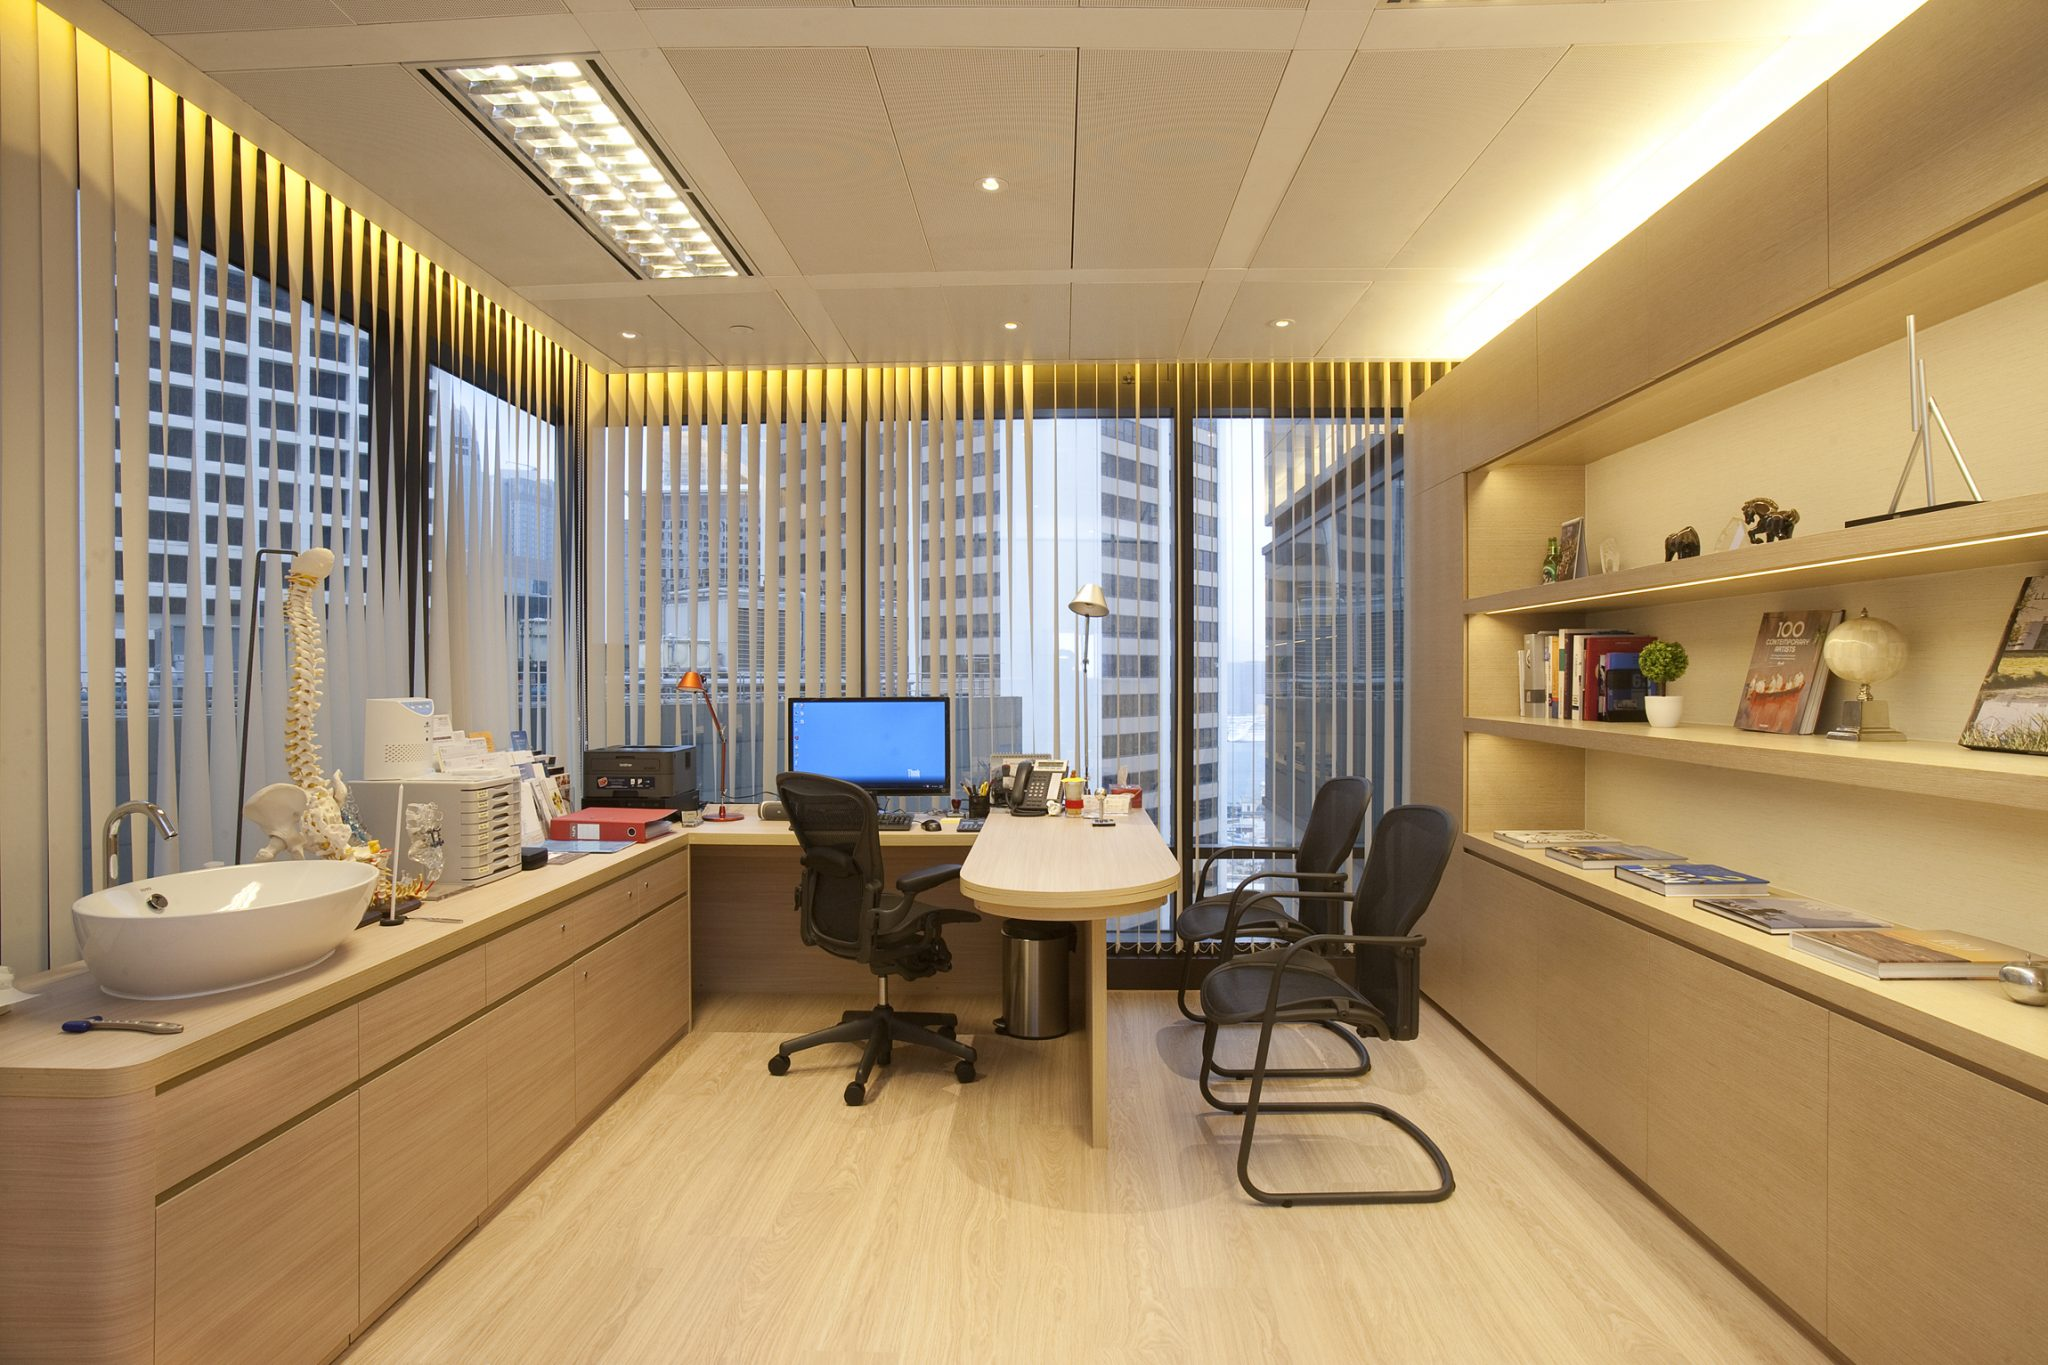 Q9 orthopaedic and spine centre hk homely healthcare centre interior design 醫療中心設計